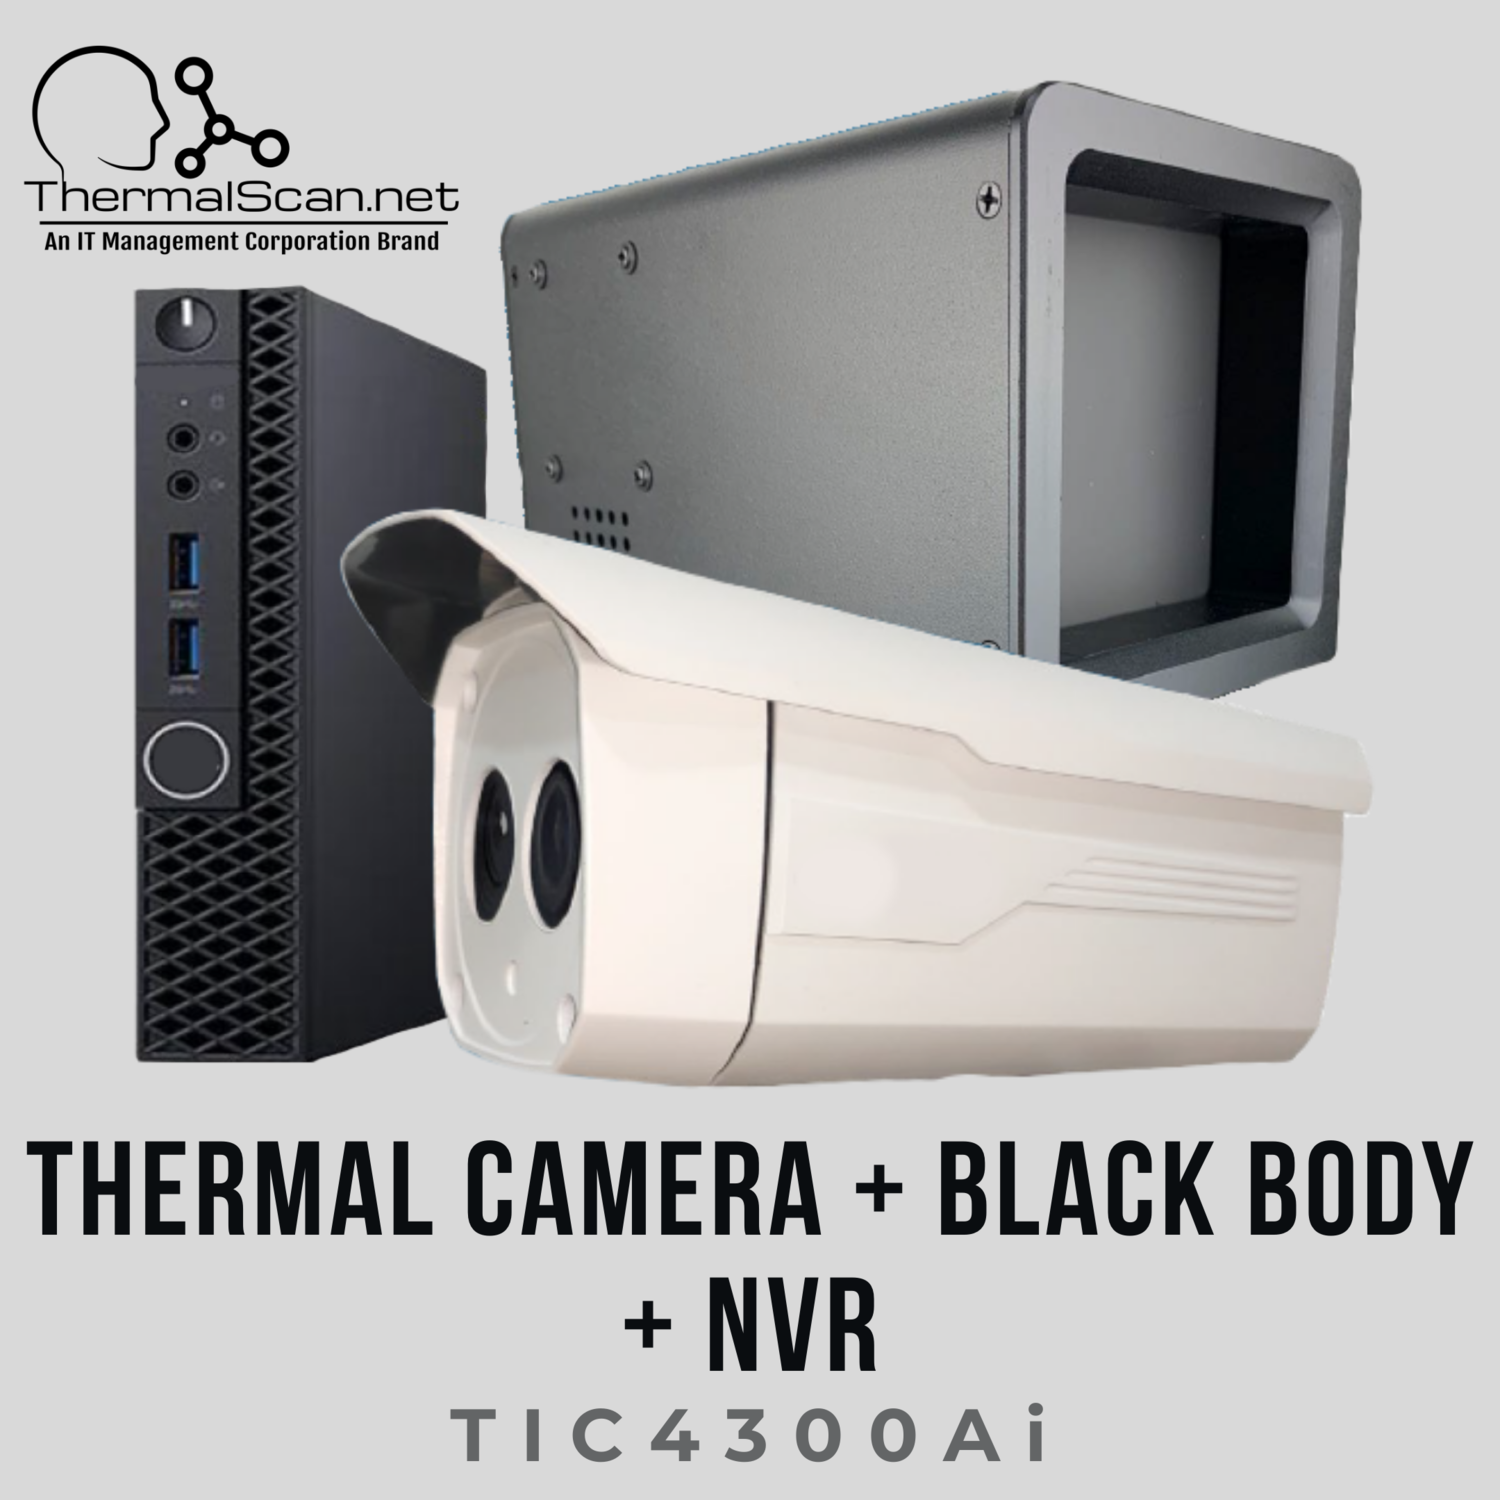 Thermal Imaging Camera + Black Body + NVR